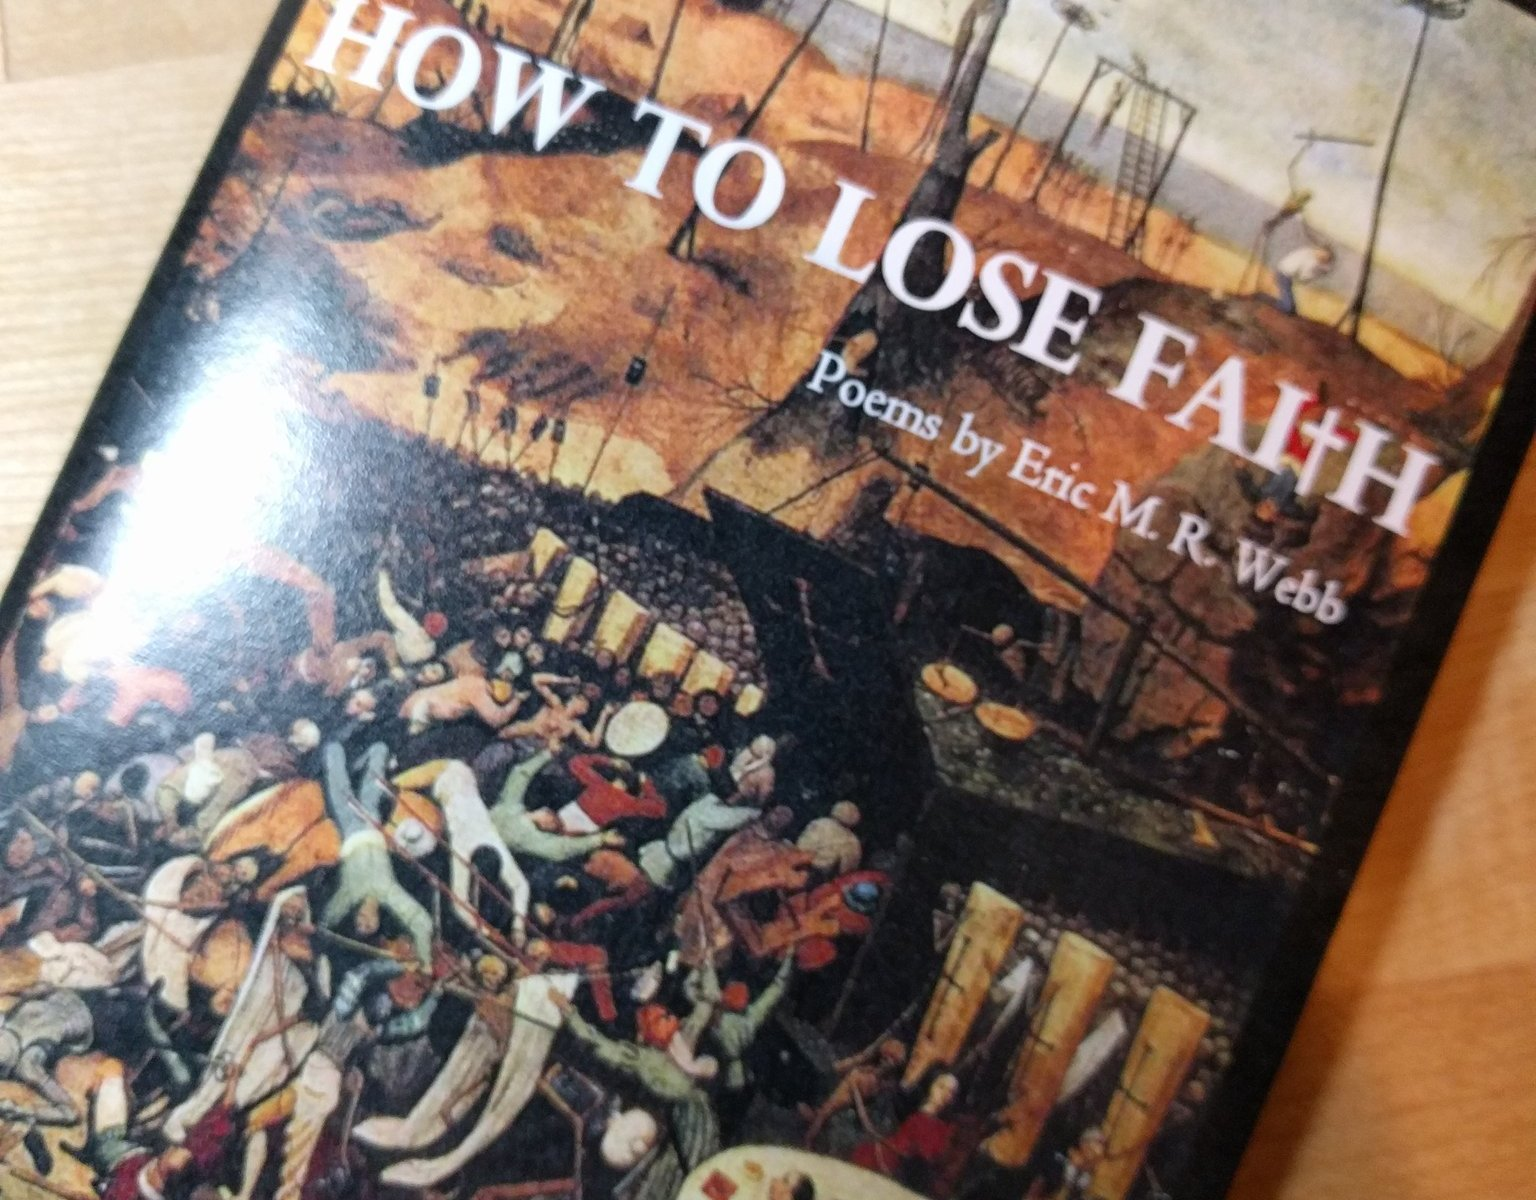 How to Lose Faith - Cover, with art by Heironomous Bosch